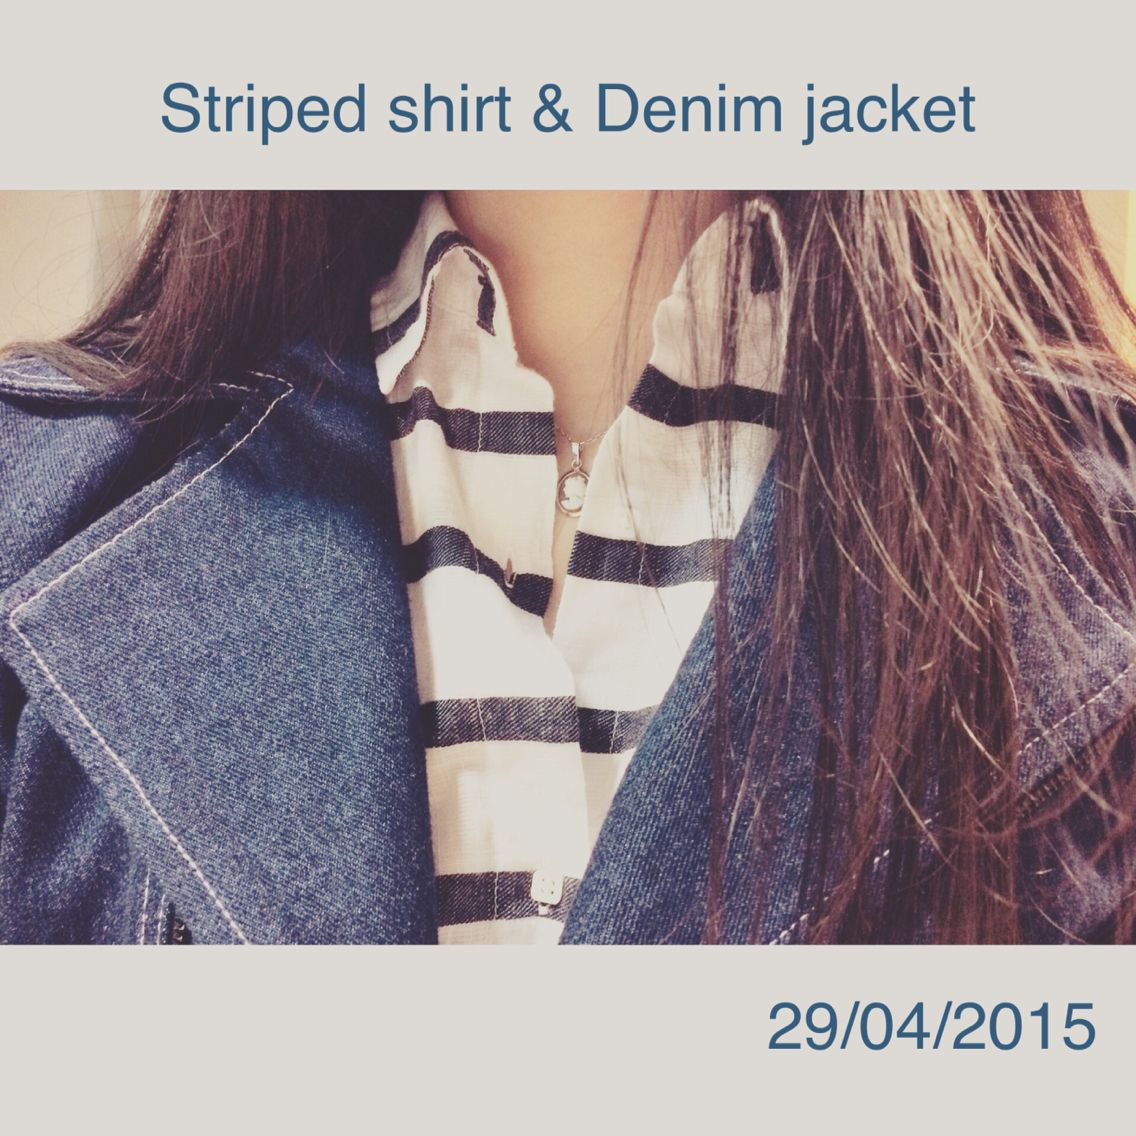 29/04/2015 mood for striped and denim